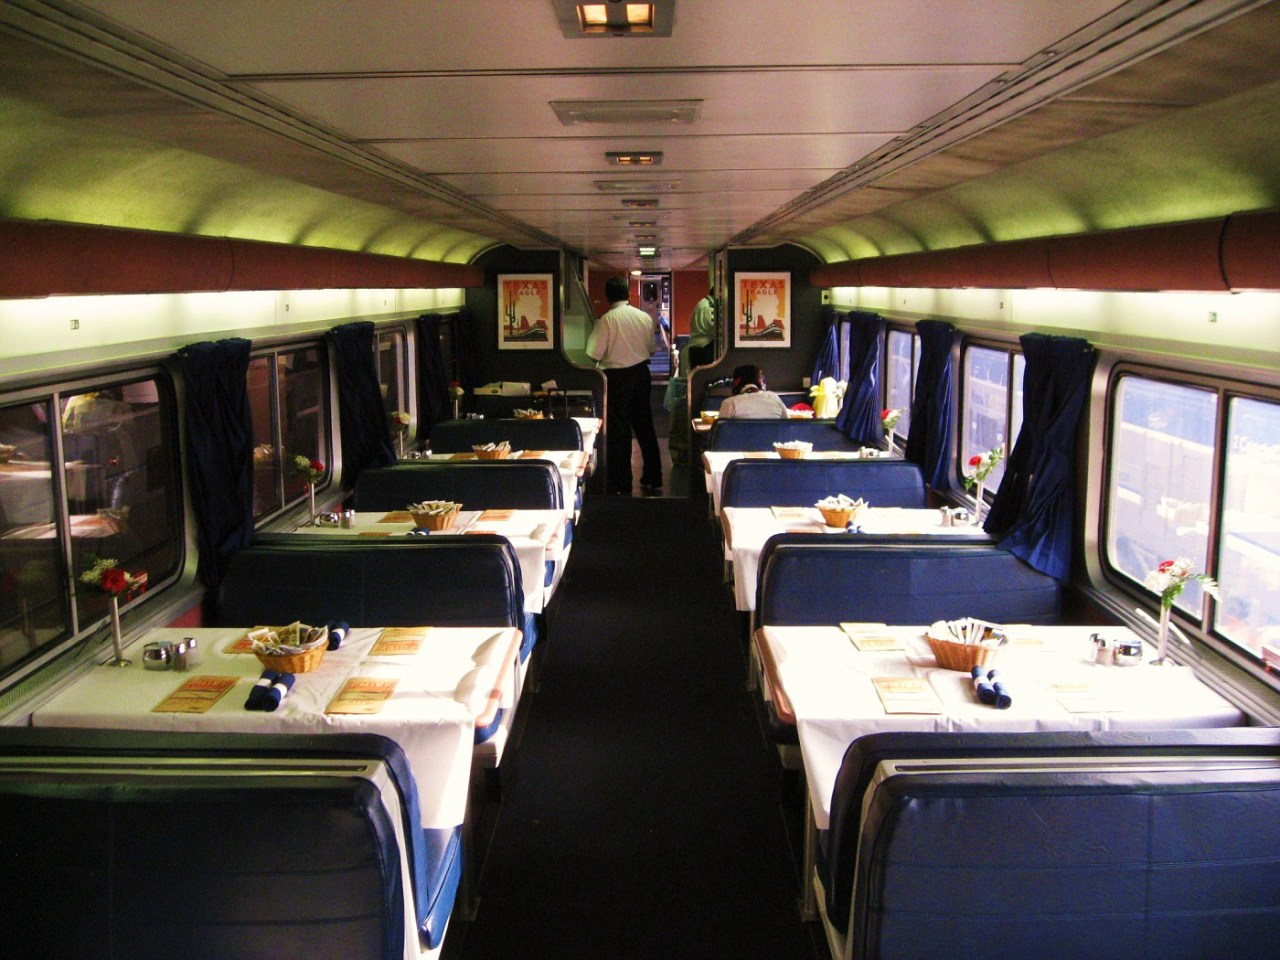 Amtrak SuperLiner Dining Car